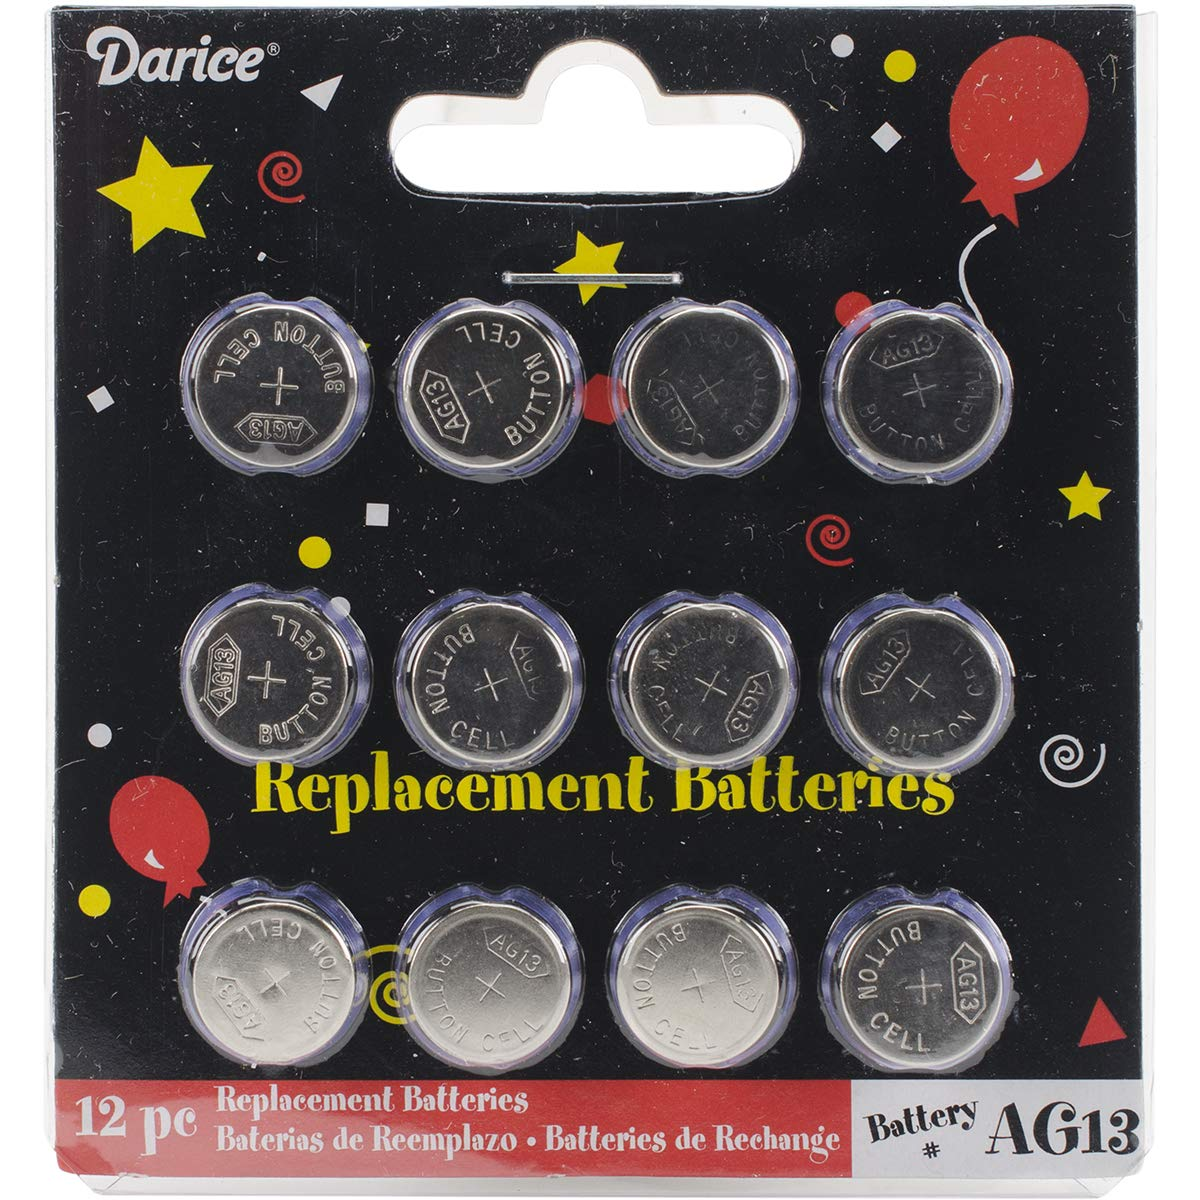 Darice Replacement Batteries for Tea Lights (12 Pack)